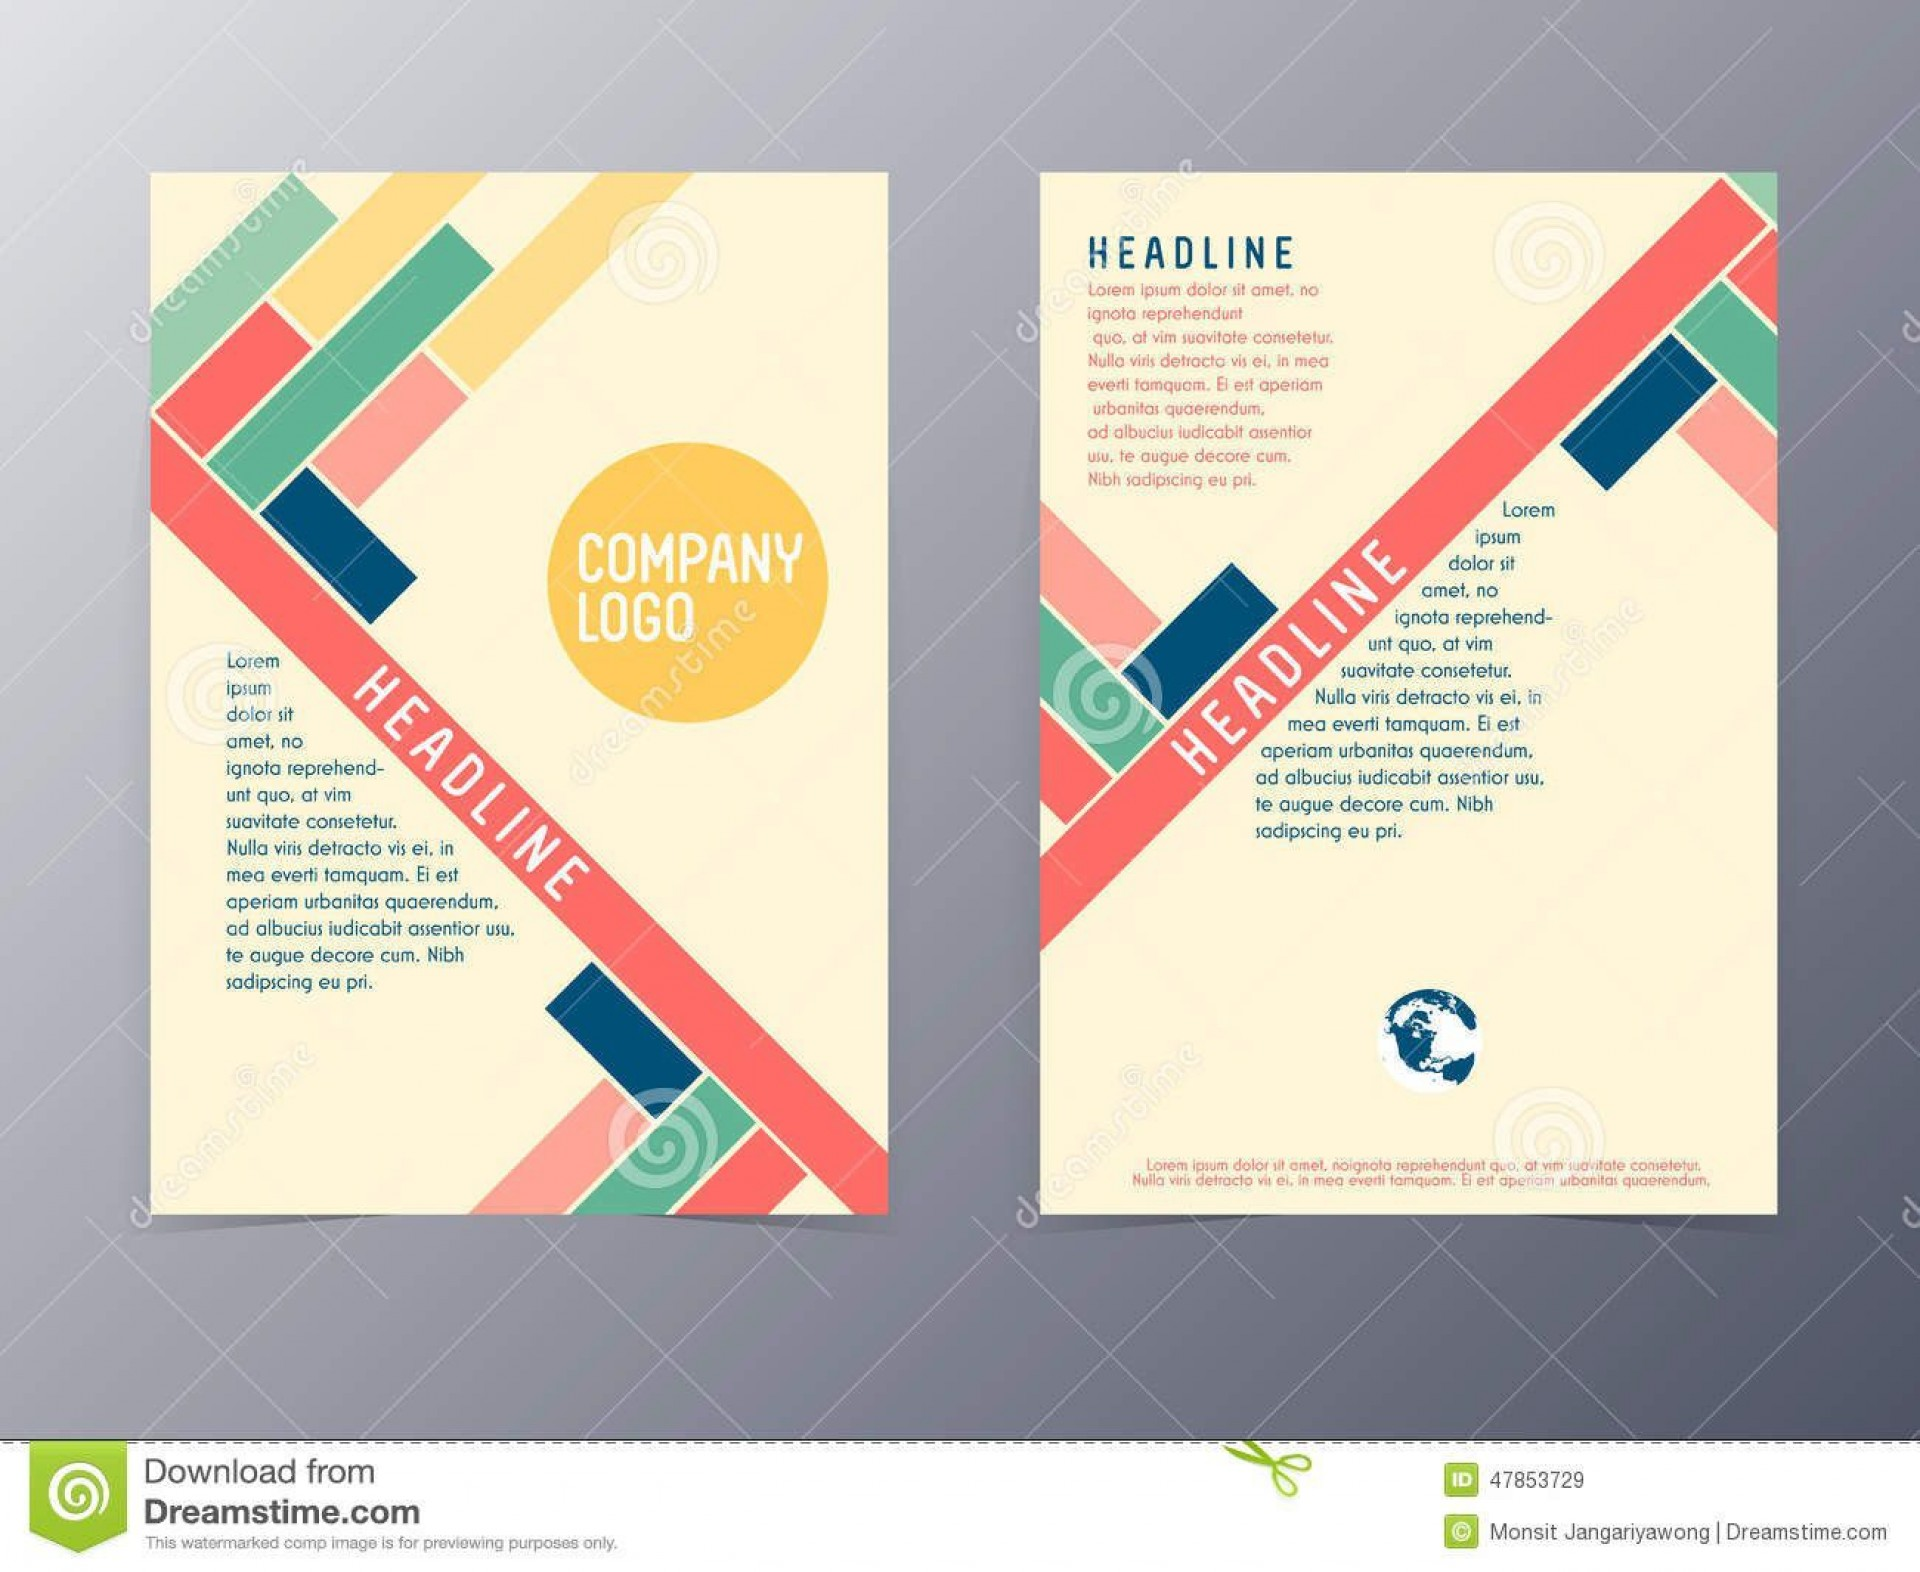 003 Archaicawful In Design Flyer Template Sample  Templates Indesign Free For Mac Event1920